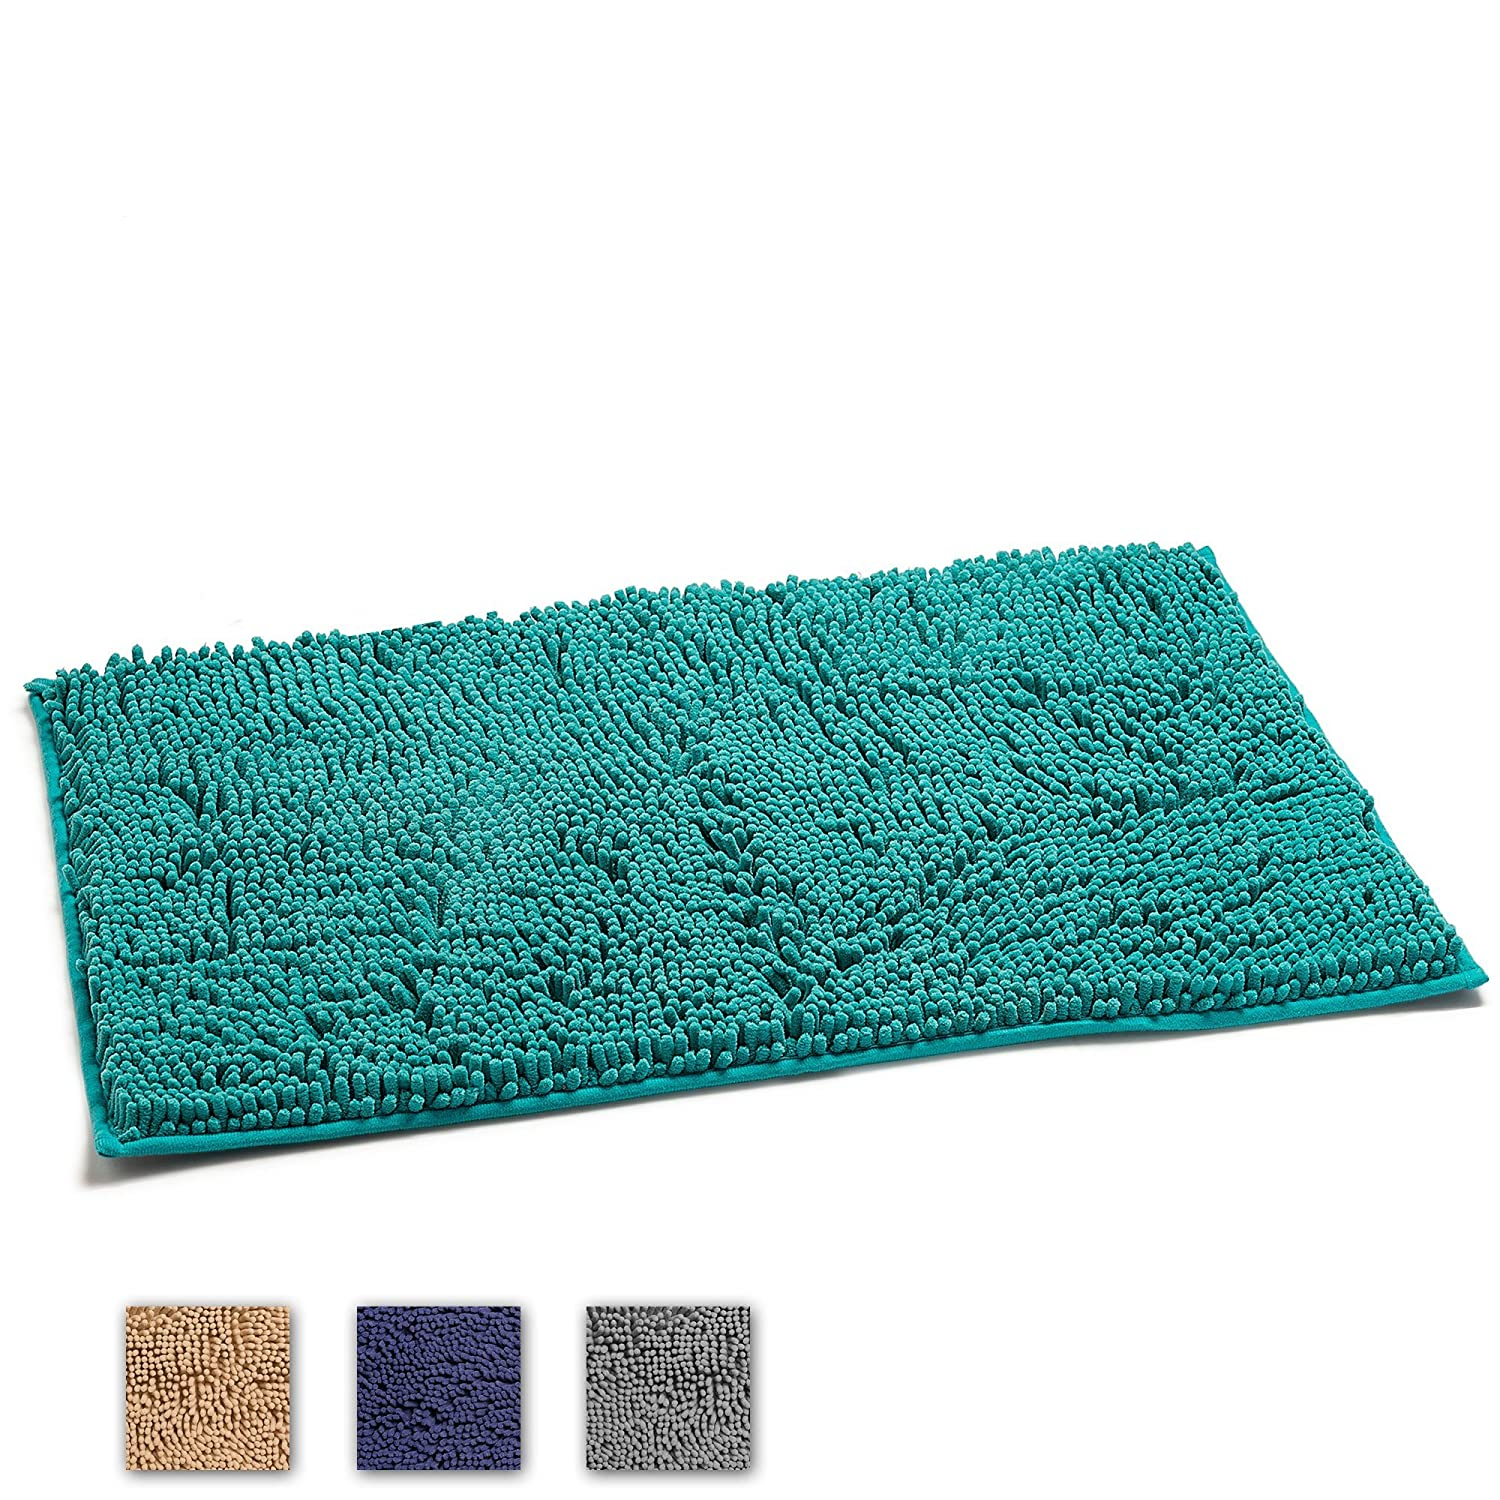 LuxUrux Bathroom Rug Mat –Extra-Soft Plush Bath Shower Bathroom Rug,1'' Chenille Microfiber Material, TPR Surface, Super Absorbent. Machine Wash & Dry (Dark Blue)